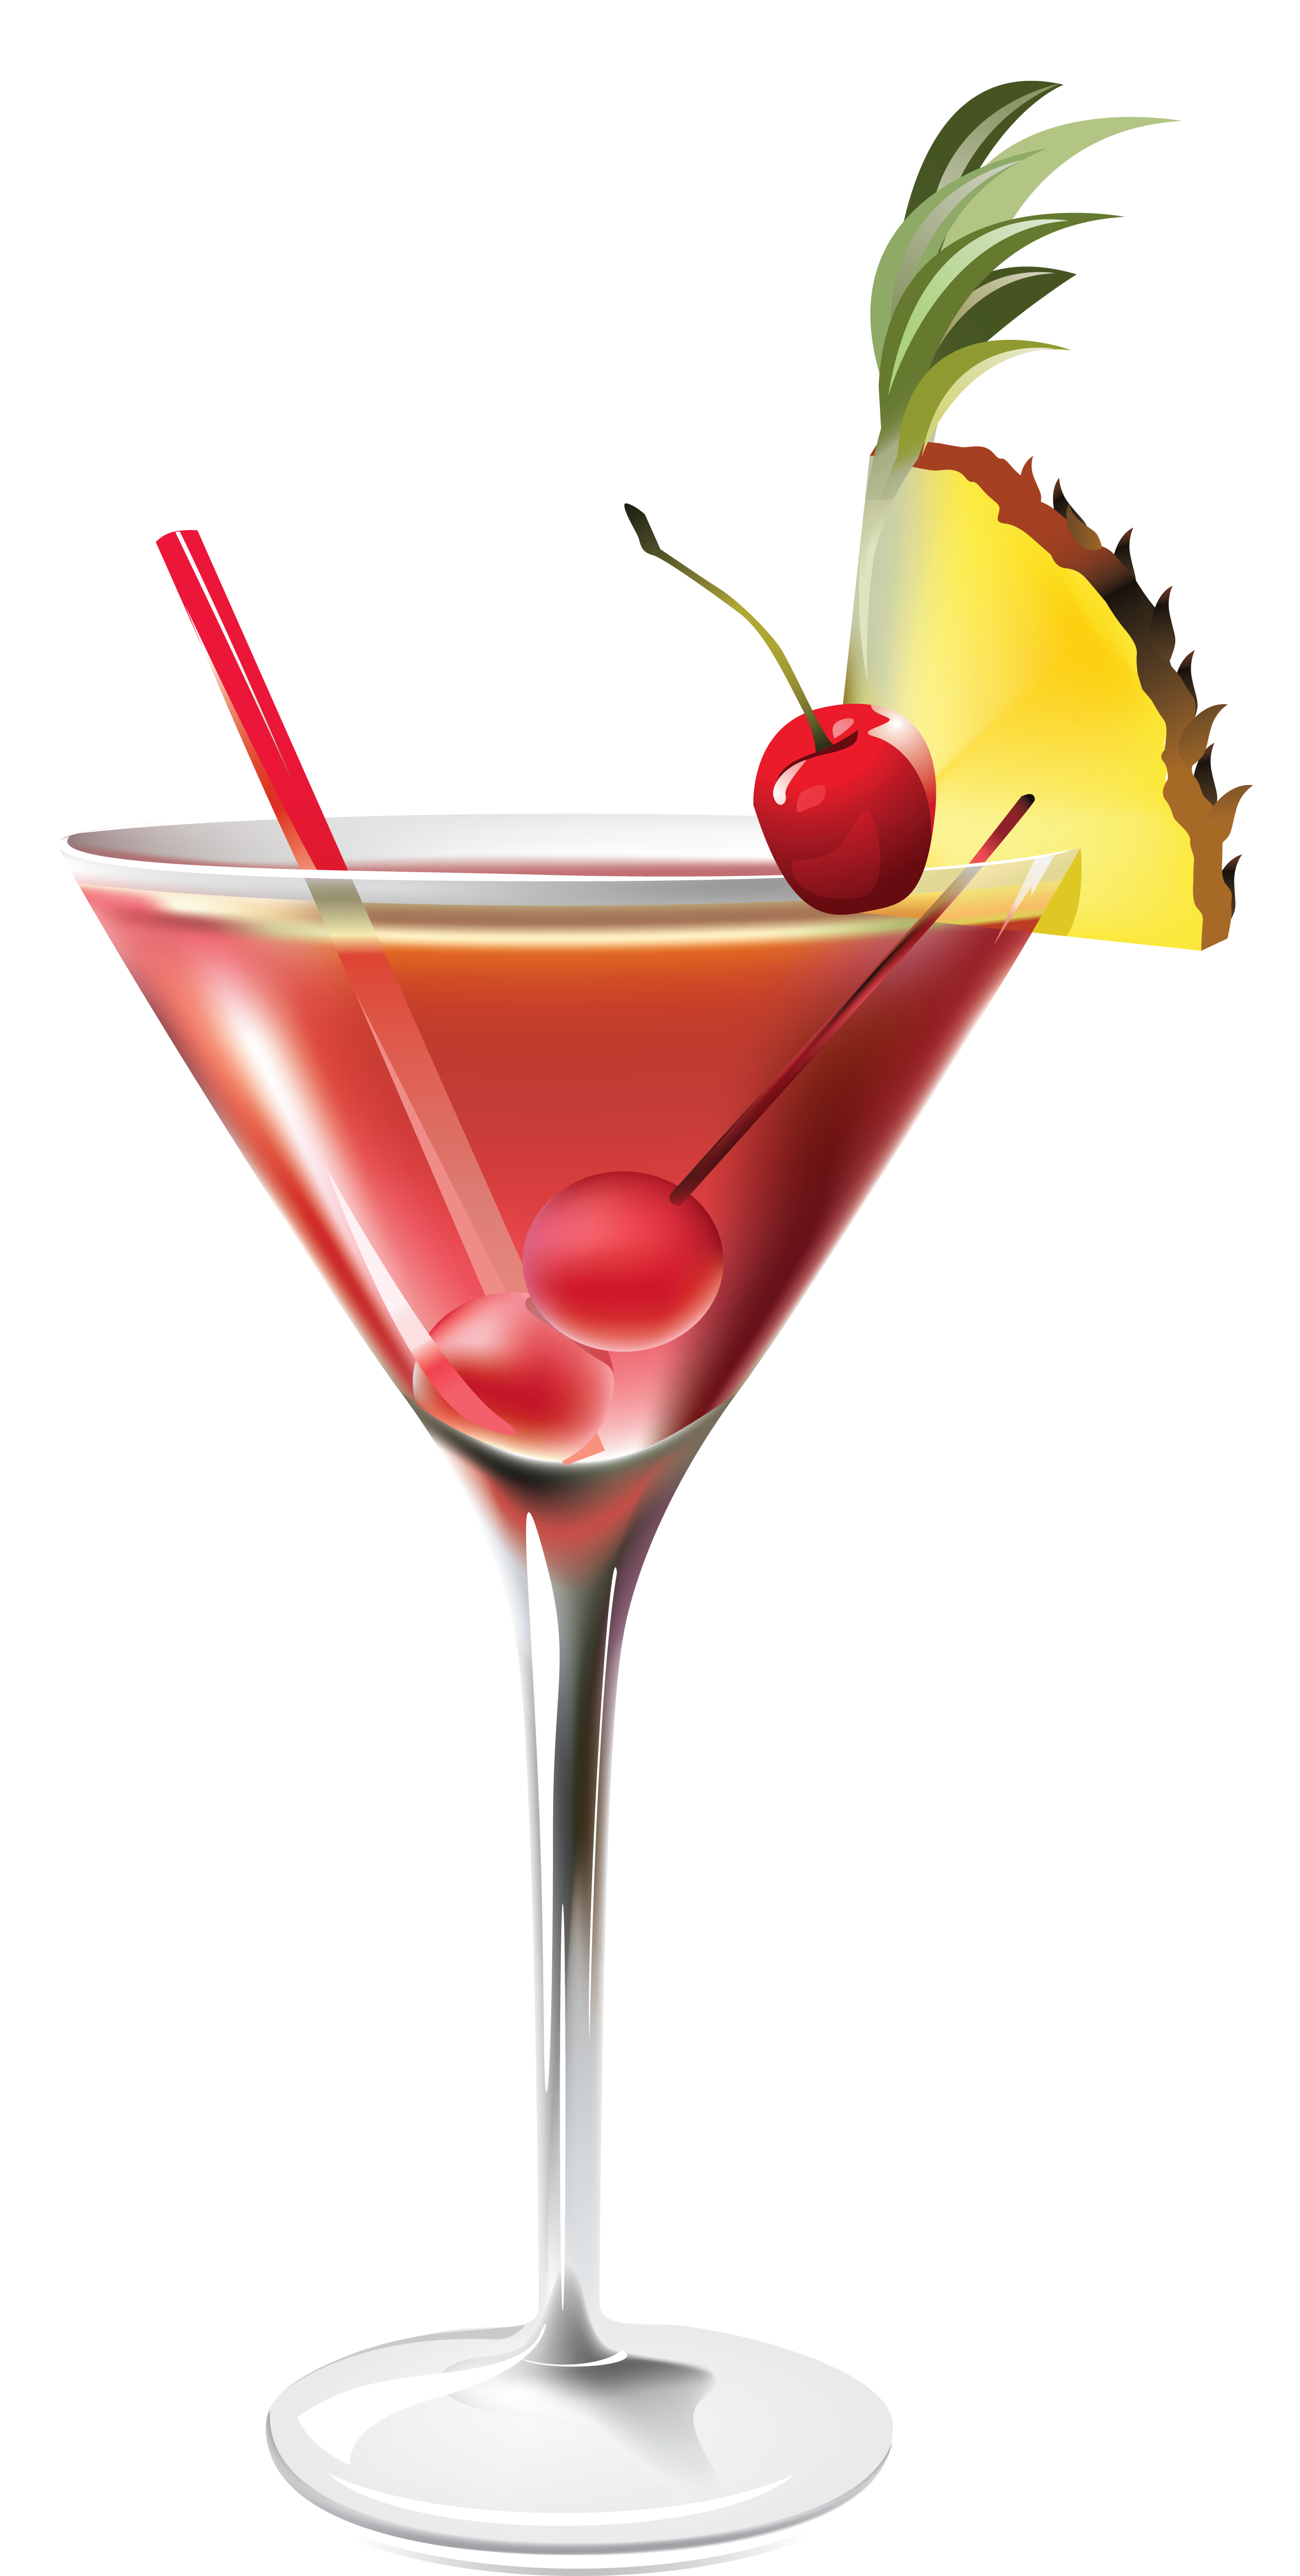 Cocktail png transparent image. Evaporation clipart alcohol